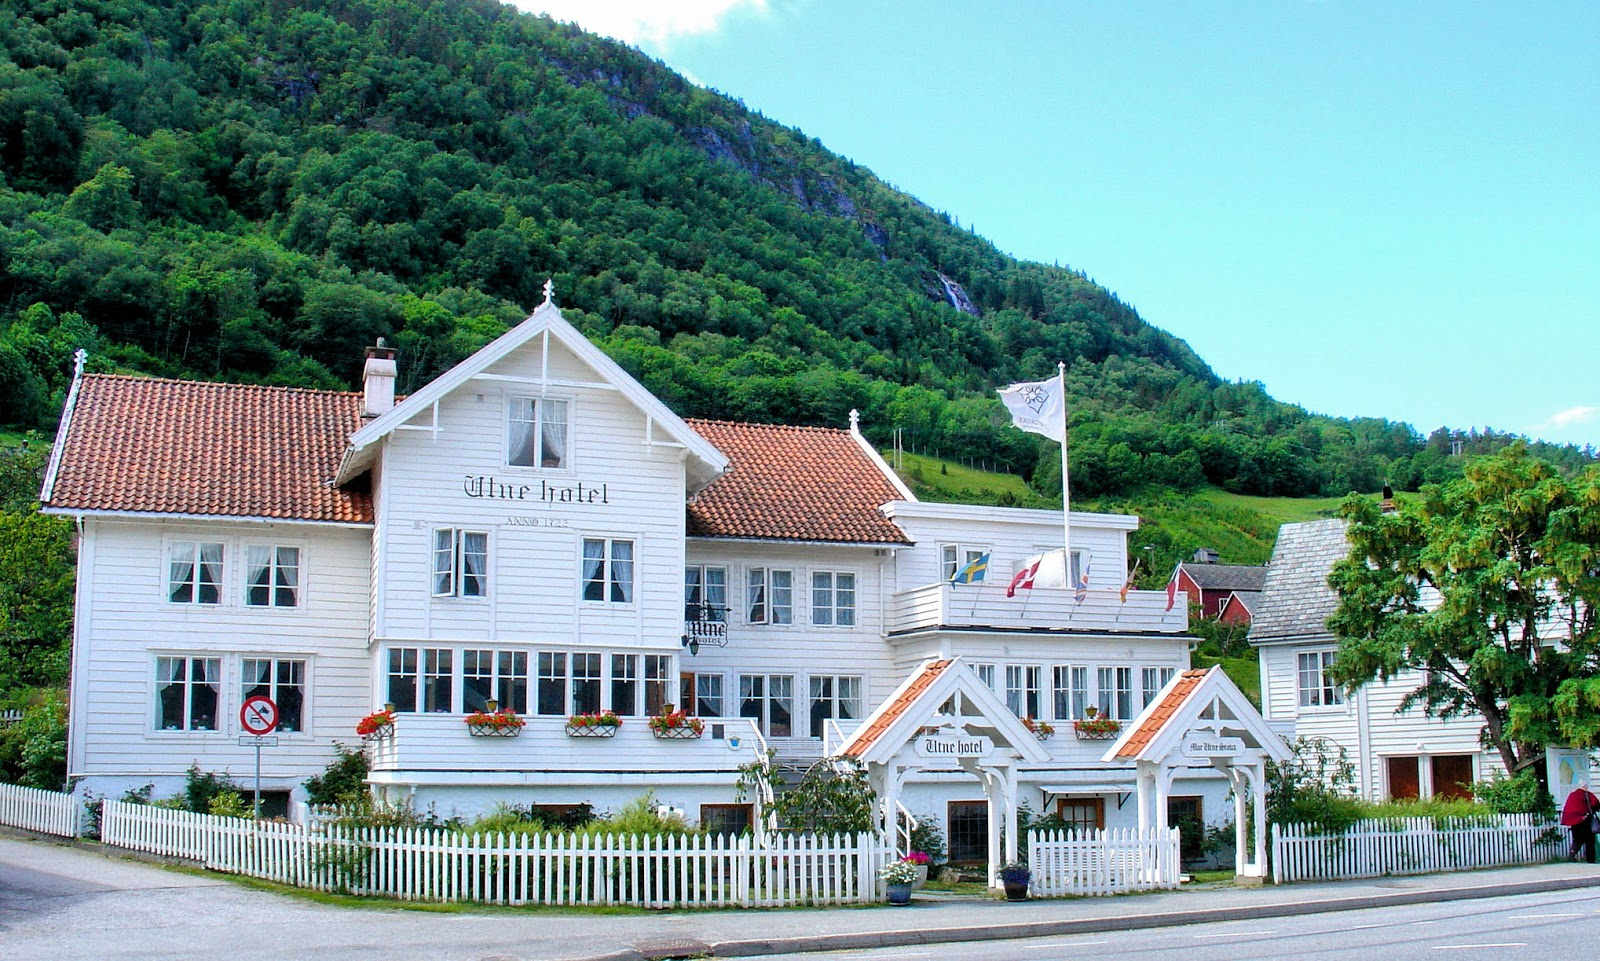 Hotel Utne is Norway's oldest hotel in continuous operation—since 1722.